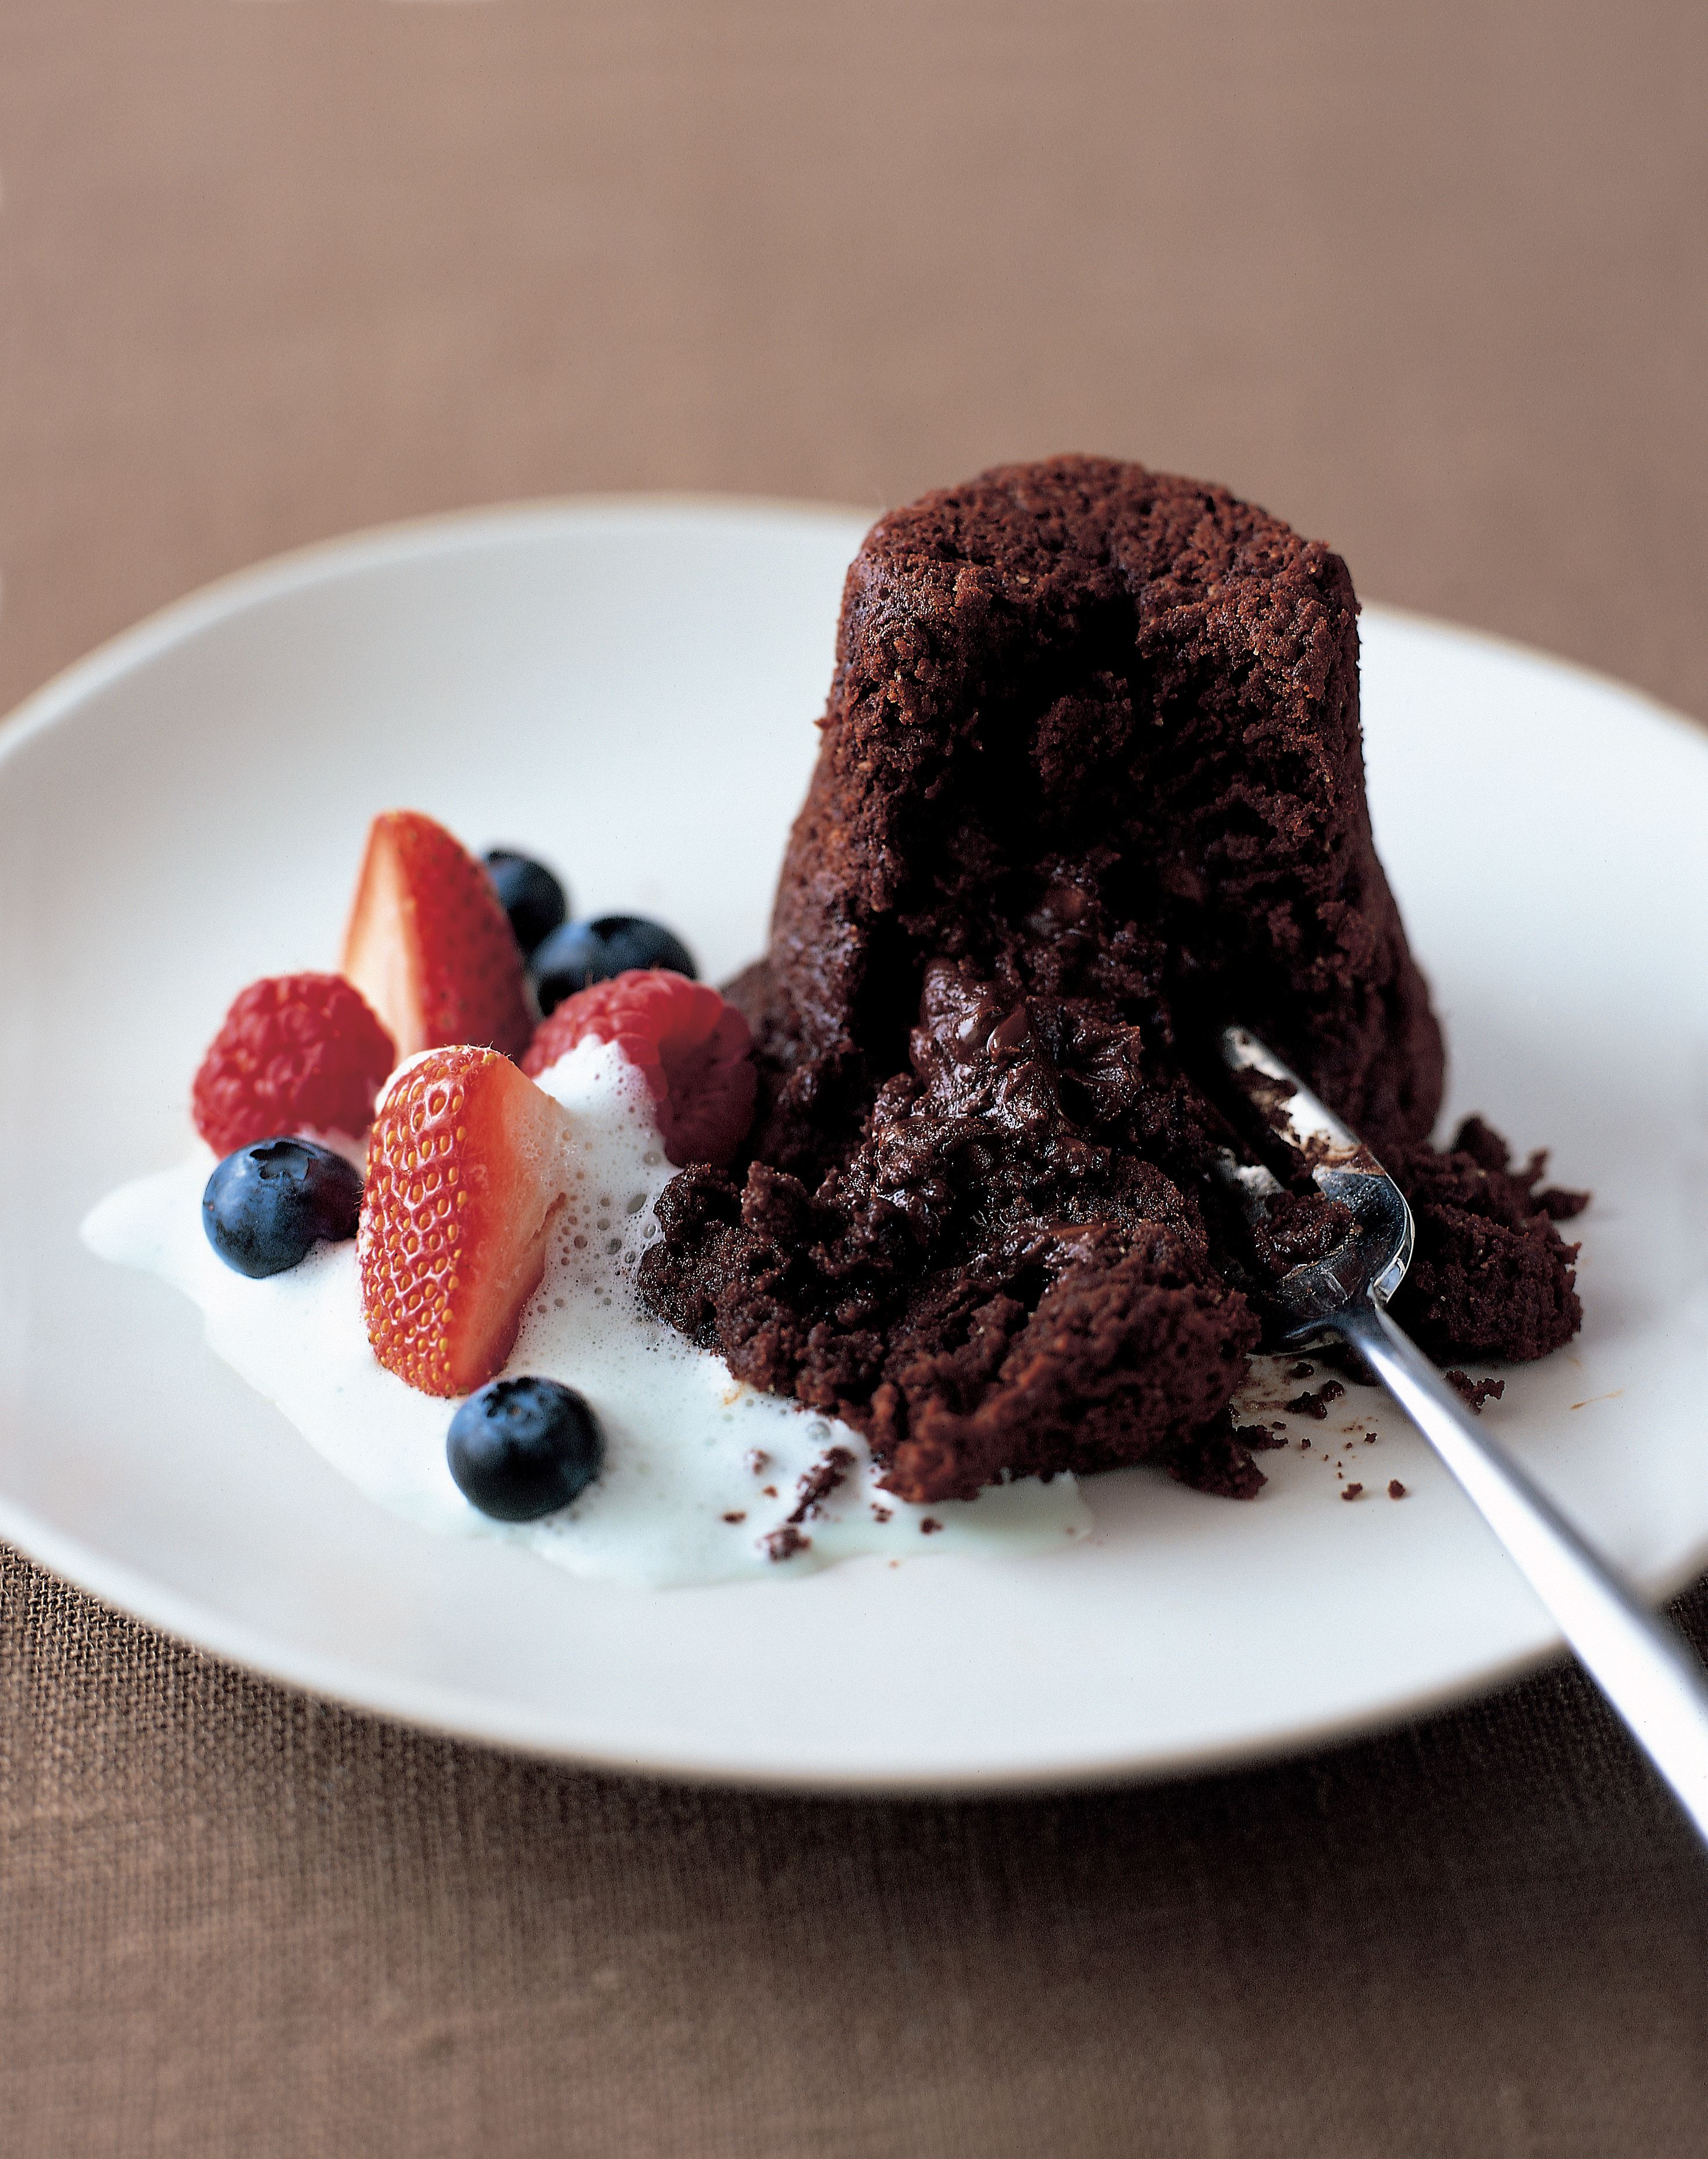 Hot chocolate fondants with summer berries and mint froth